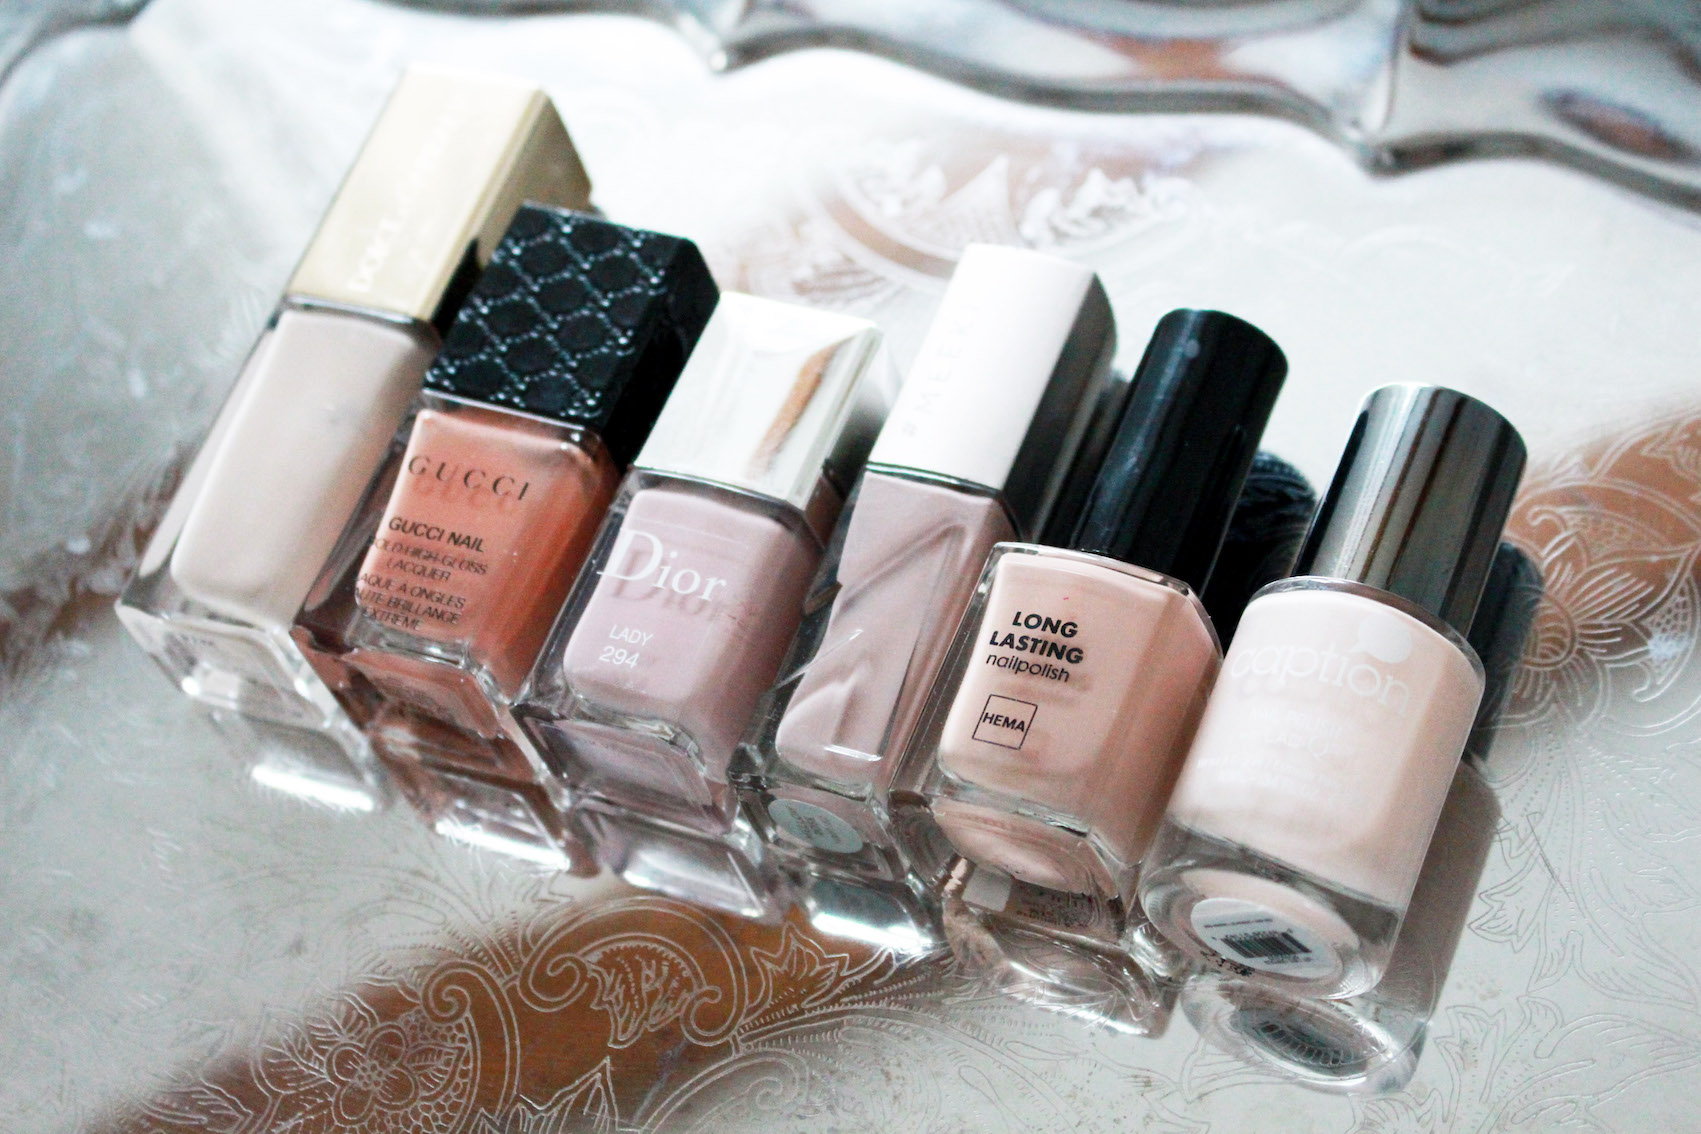 Floortjeloves.com - MY FAVORITE NEUTRAL NAIL POLISHES